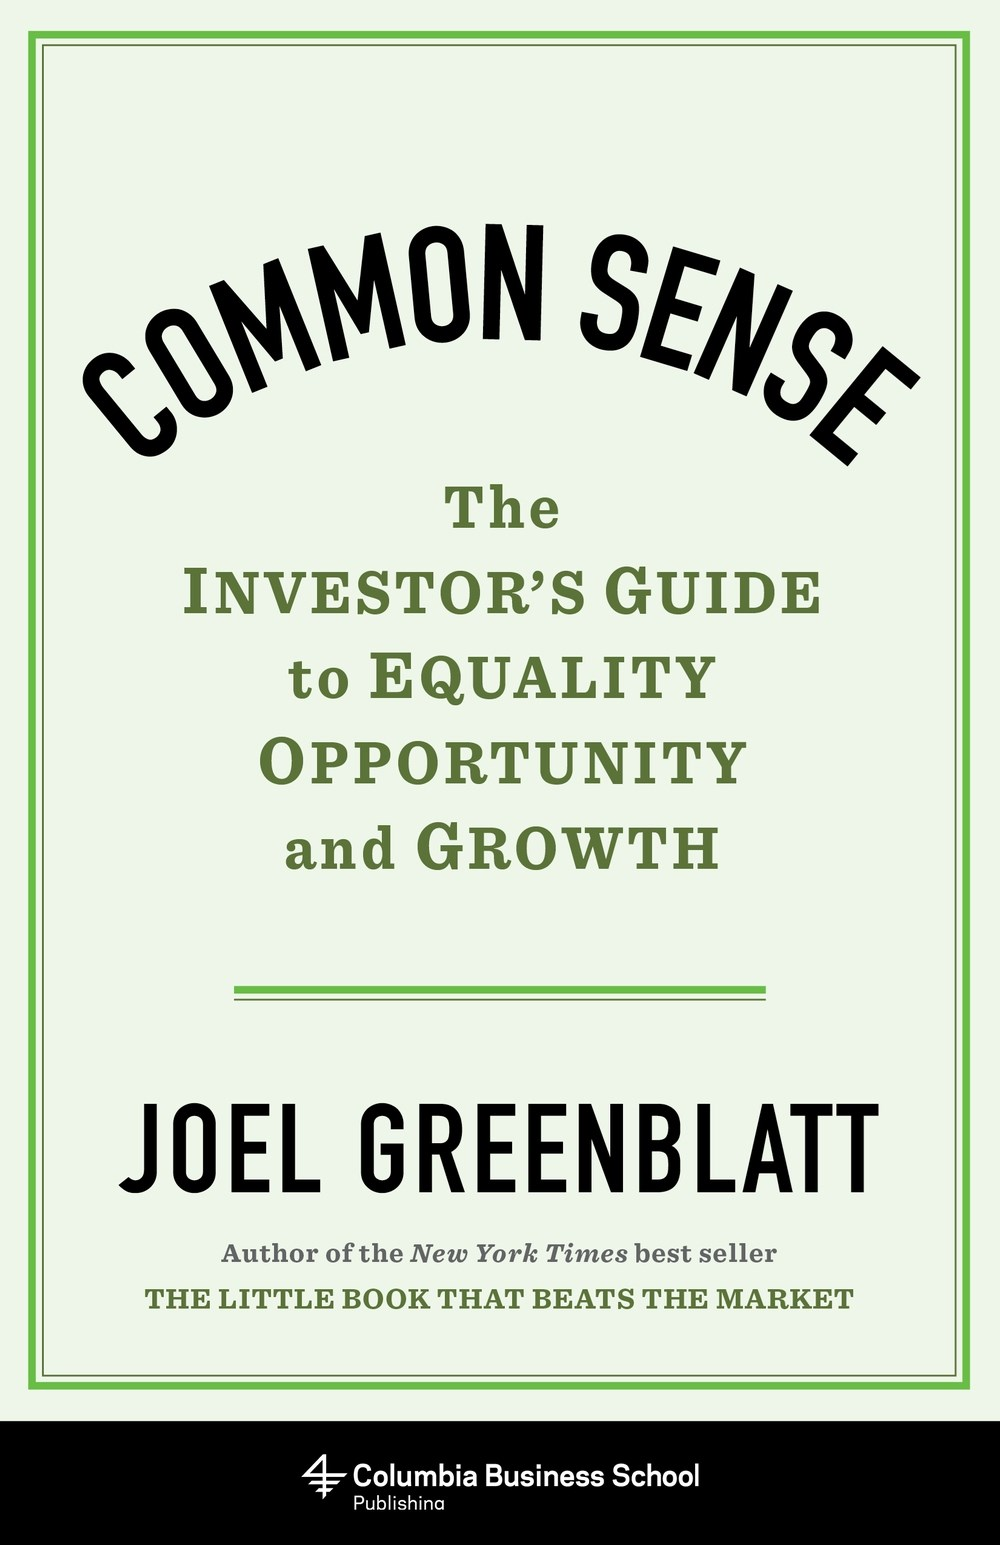 Common Sense – The Investor's Guide to Equality, Opportunity, and Growth